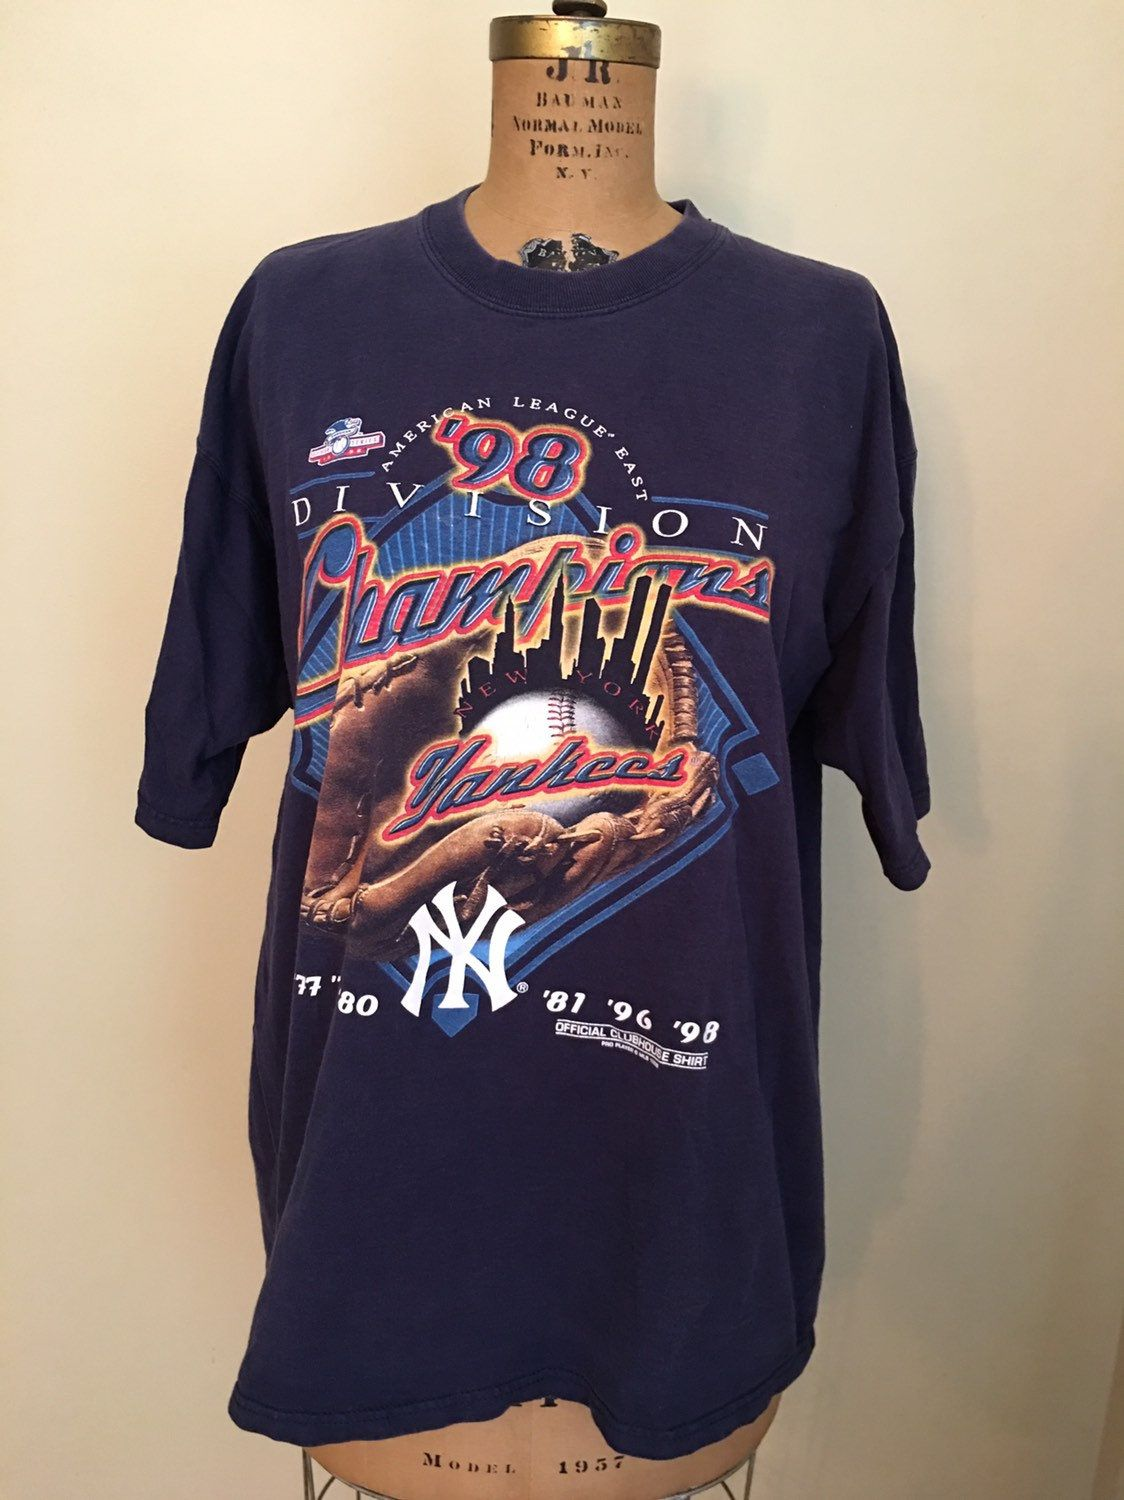 Vintage New York Yankees T Shirt 1998 American League East Division Championship T Shirt Size Xlarge Yankees T Shirt New York Yankees Logo Vintage New York